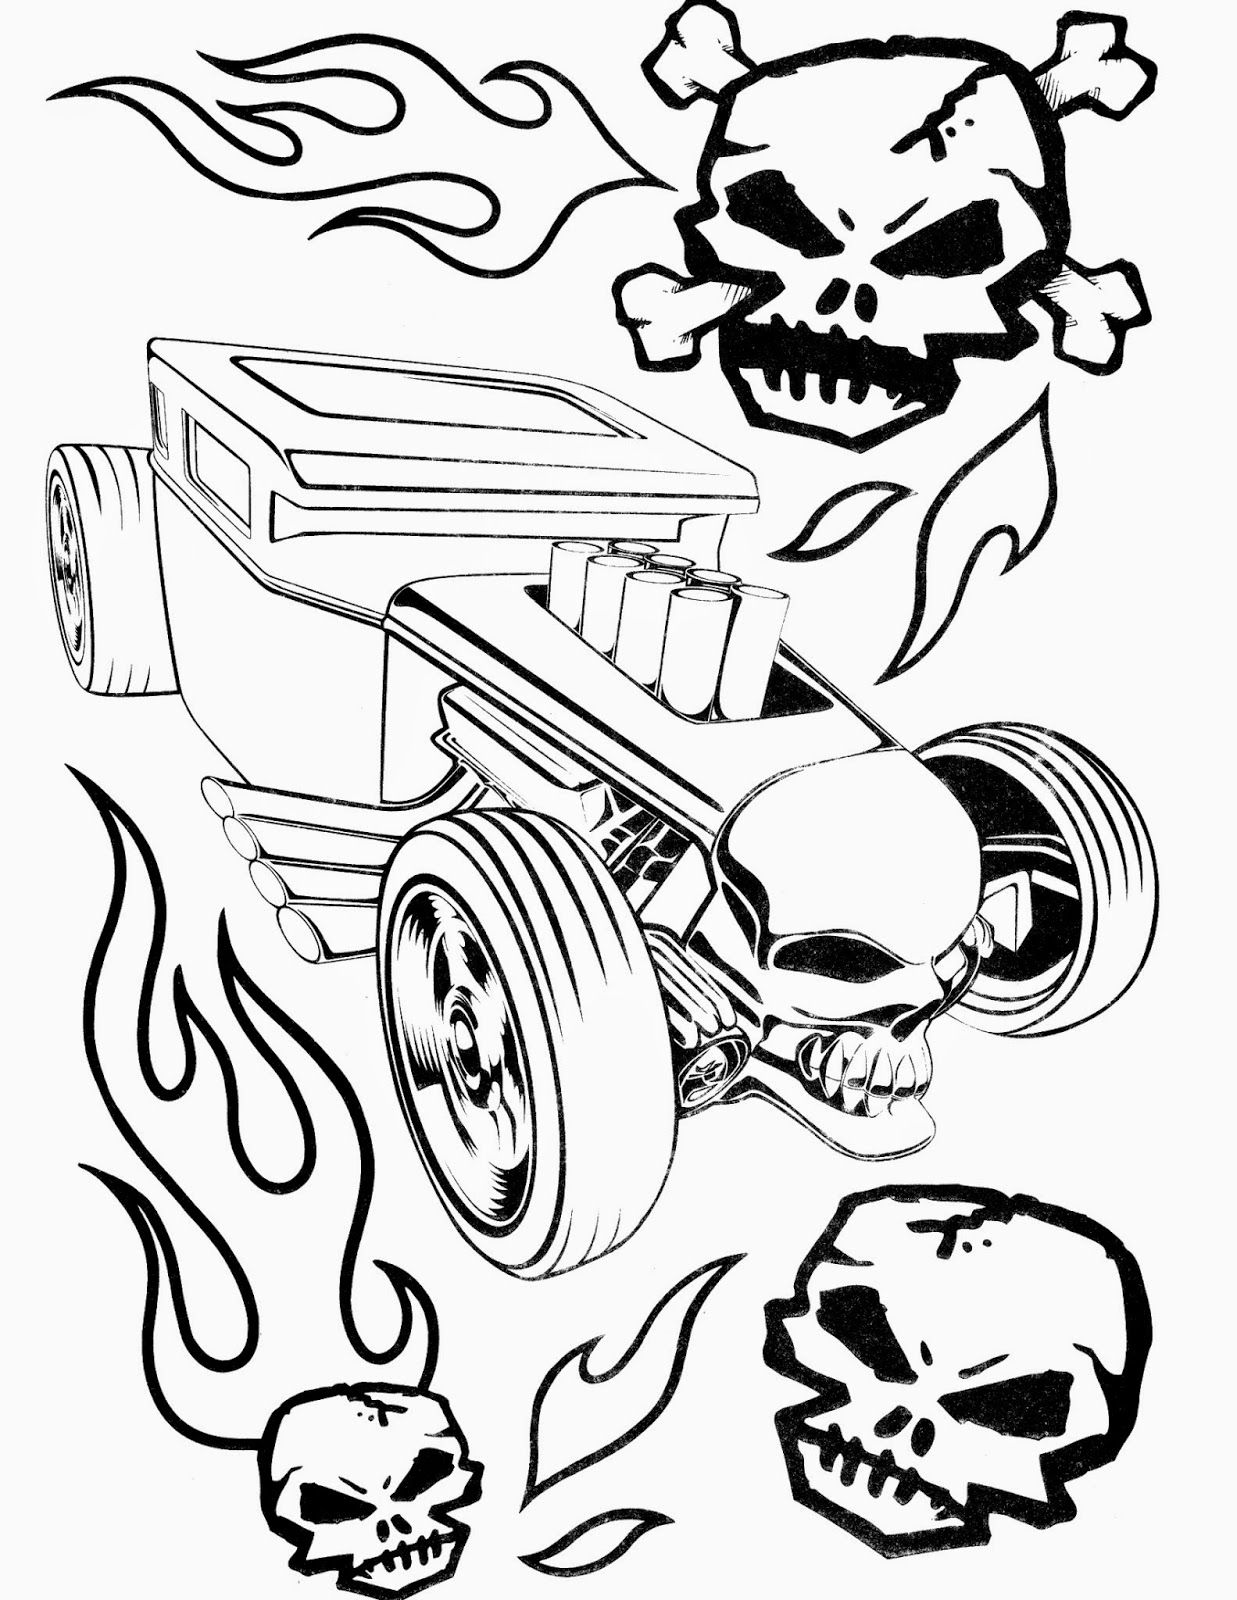 hot wheels cars pictures to color free printable hot wheels coloring pages for kids color to hot cars wheels pictures